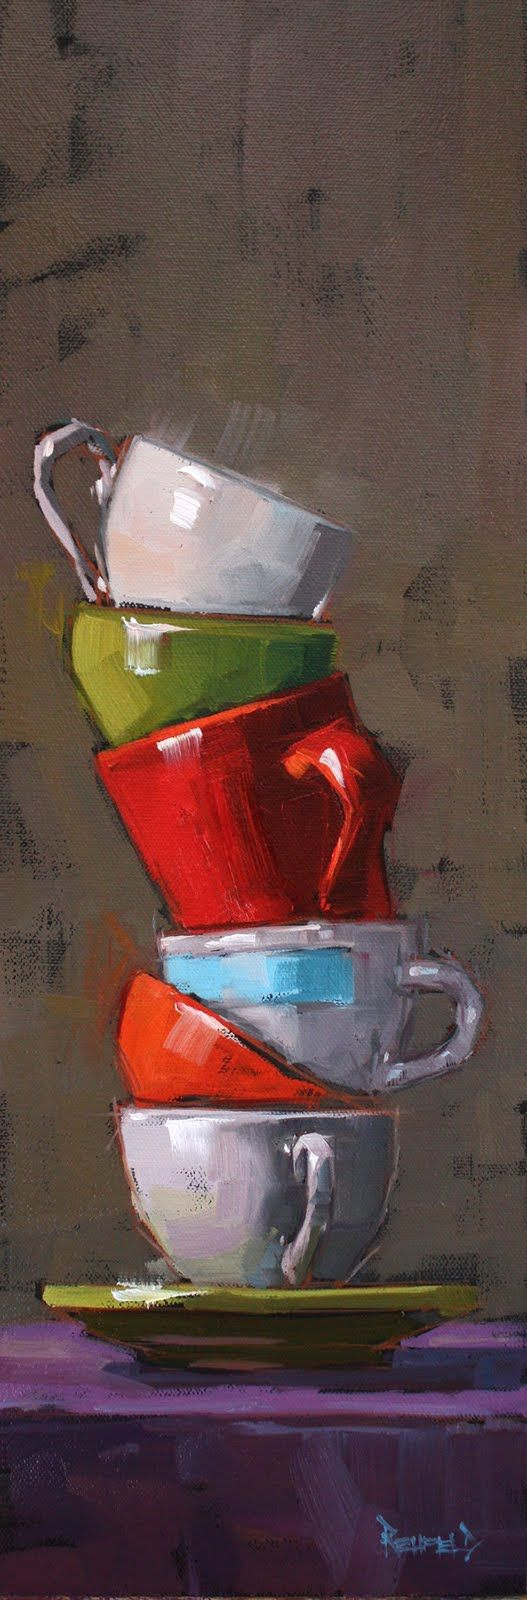 Cathleen Rehfeld Daily Painting: Study for Six Cups